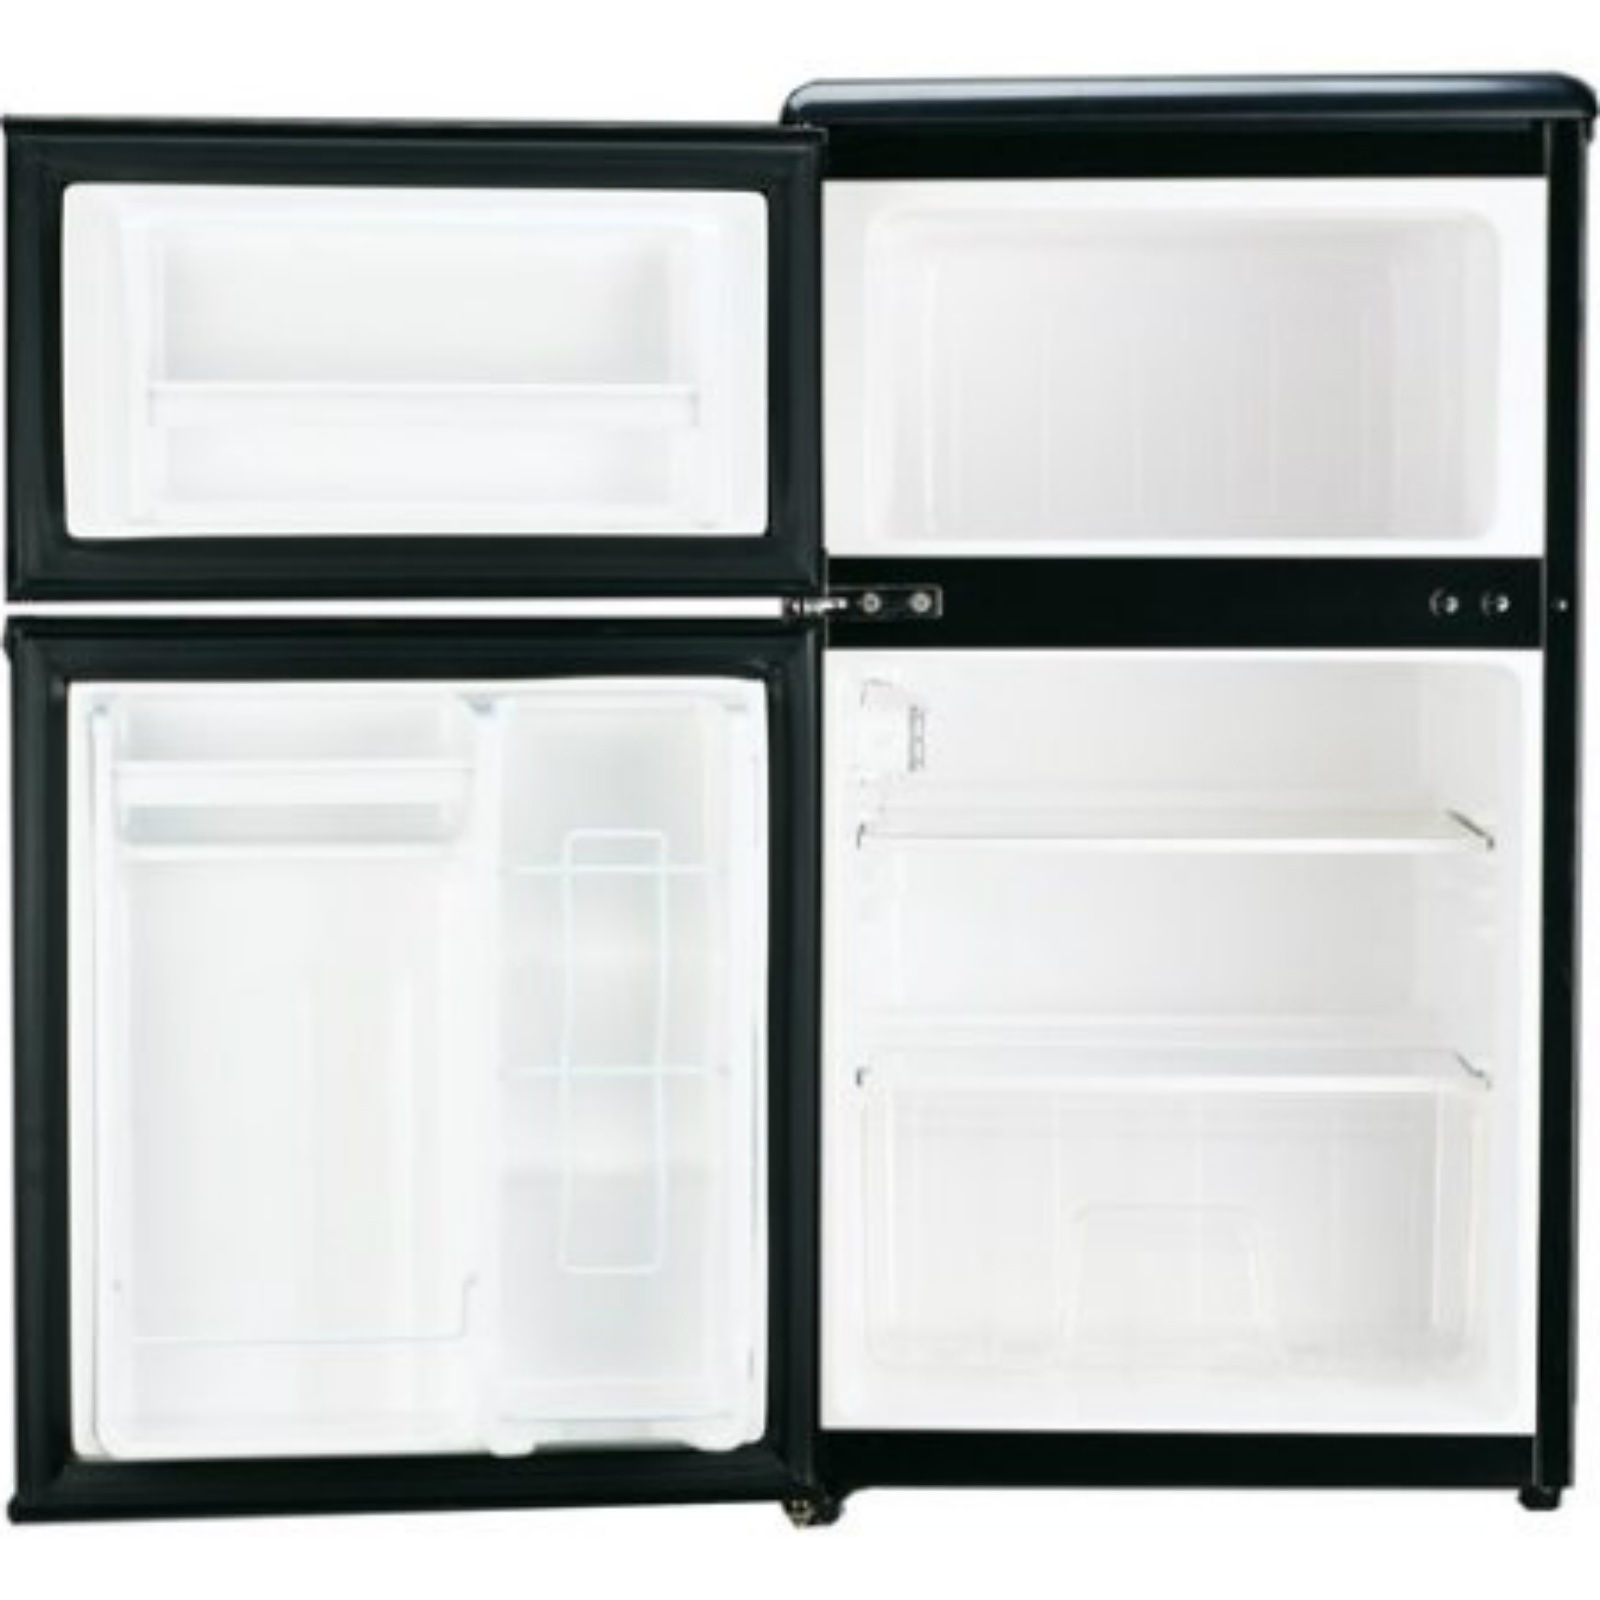 Mini Fridge With Freezer For Bedroom Office Stainless